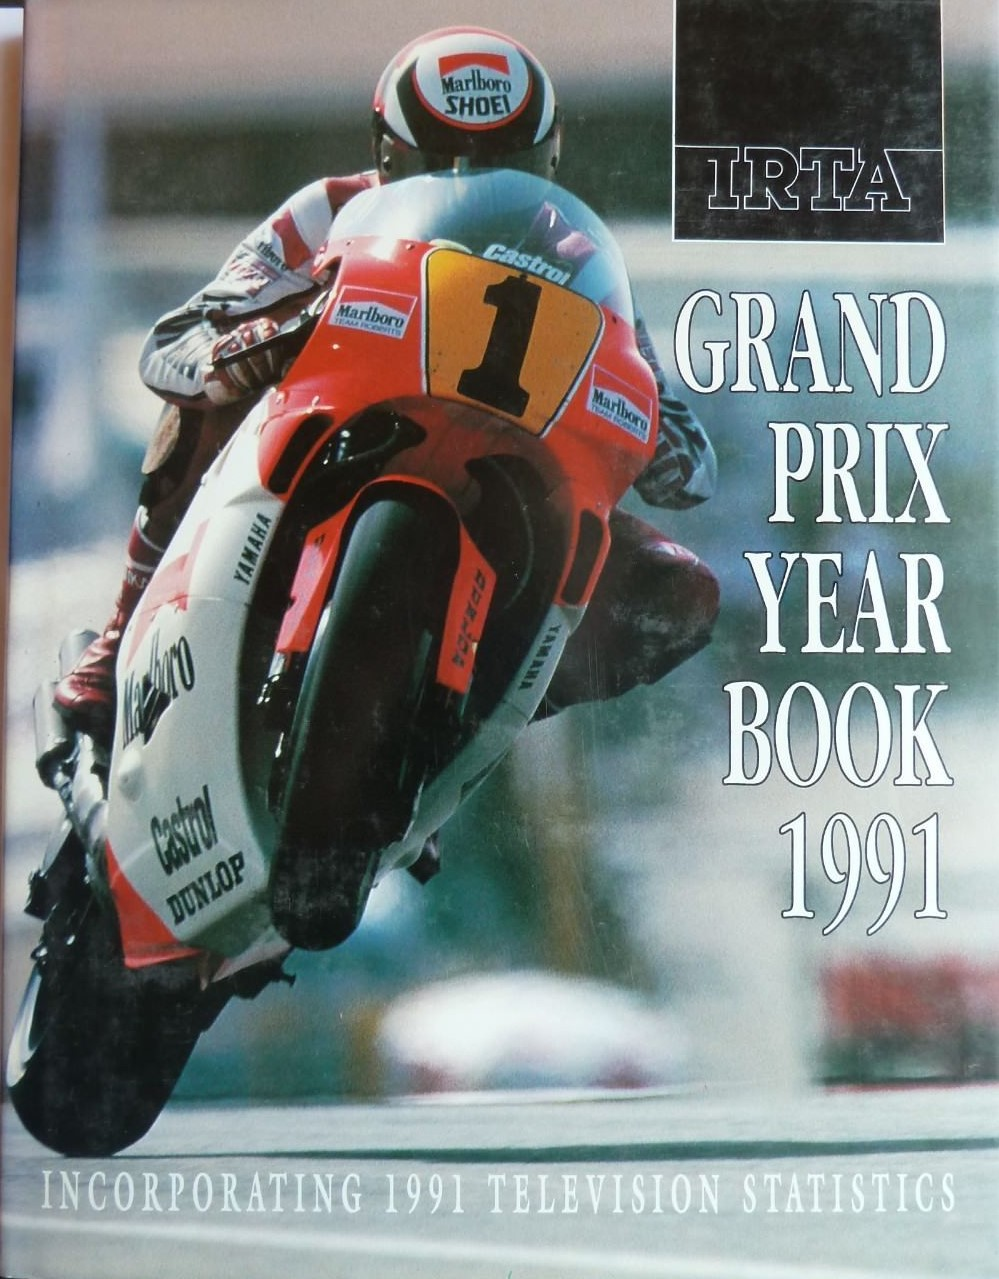 IRTA GP Yearbook 1991